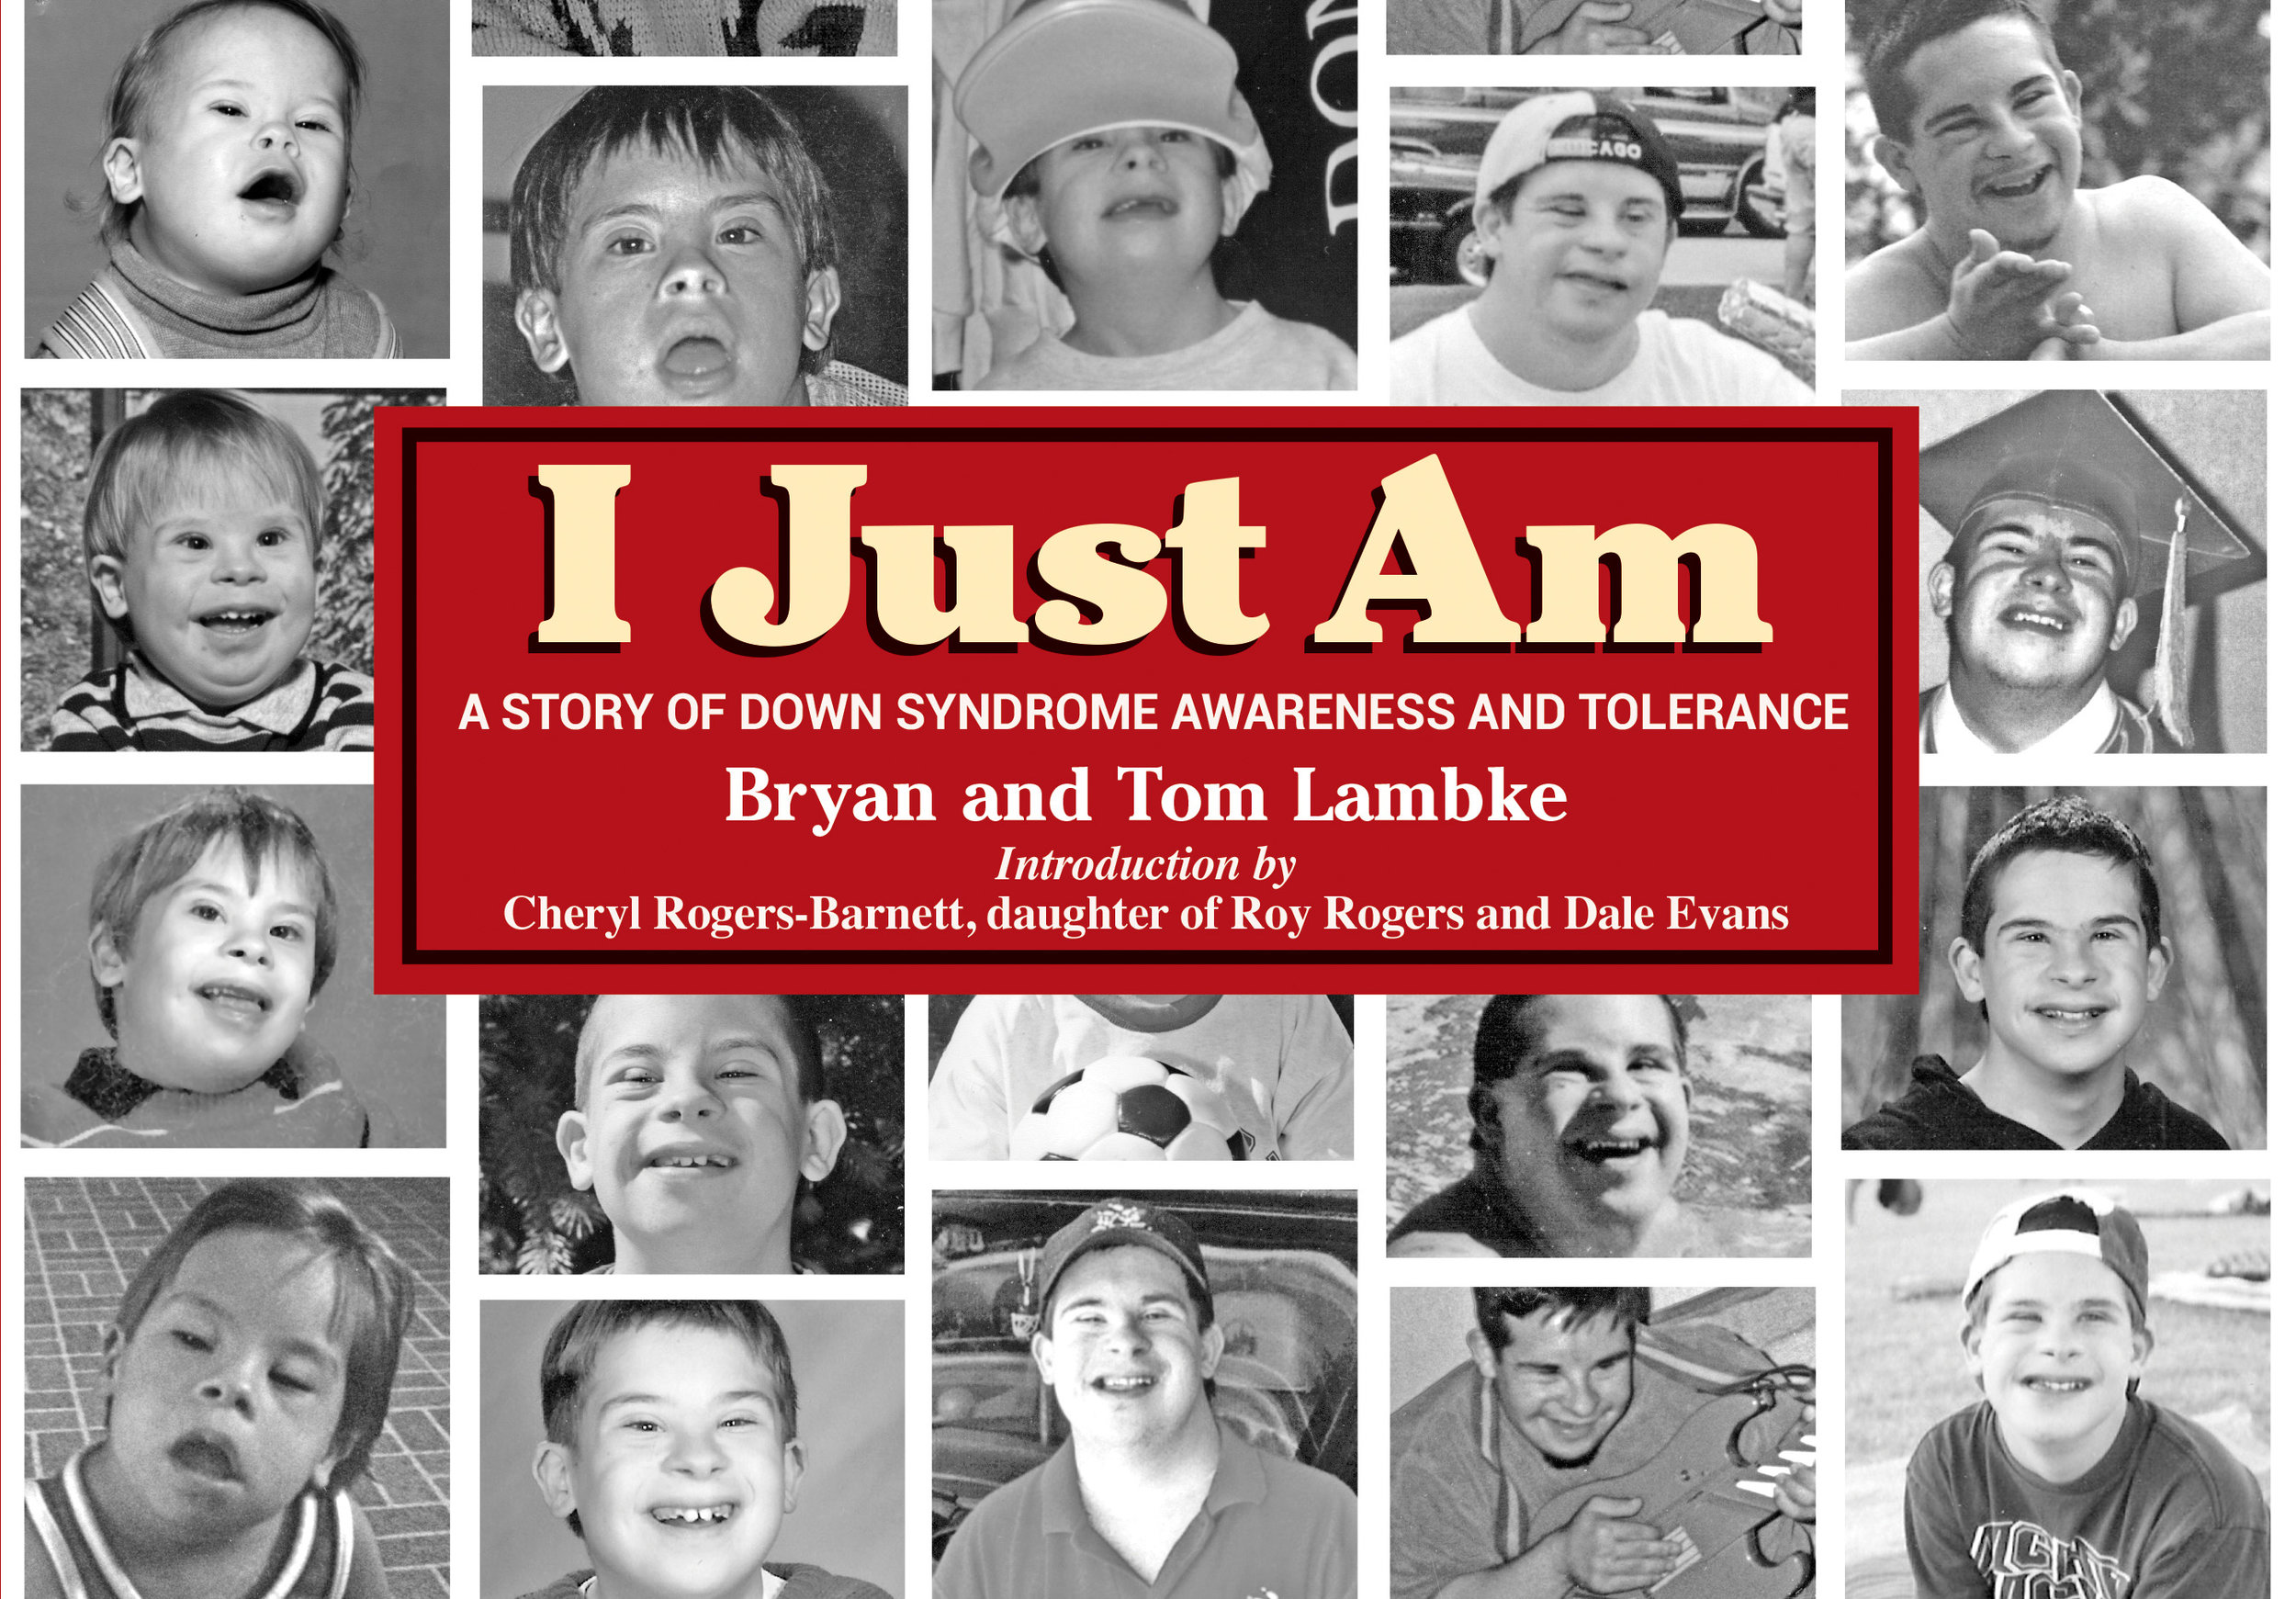 Introduction to  I Just Am  by Cheryl Rogers-Barnett, daughter of Roy Rogers and Dale Evans